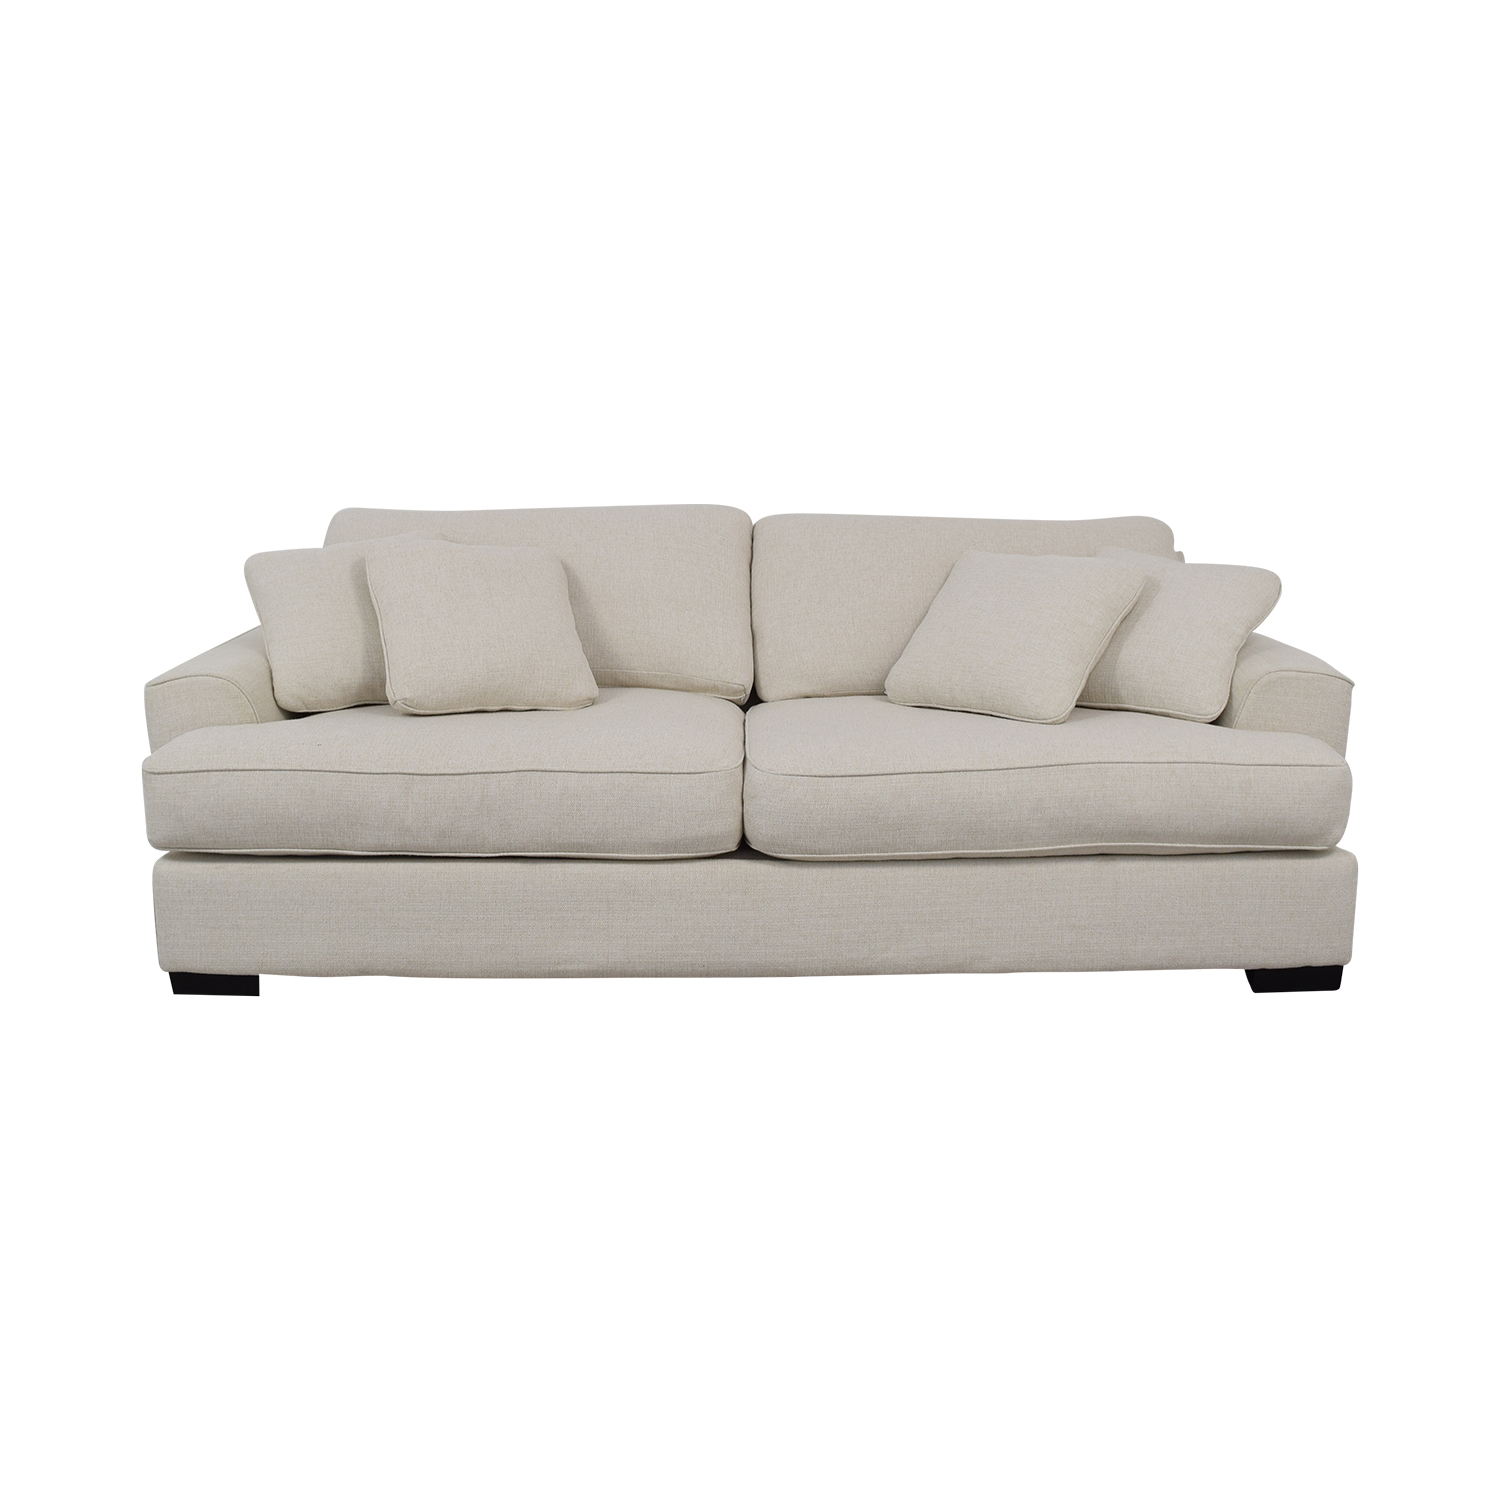 Macy's Macy's Ainsley White Two-Cushion Sofa second hand